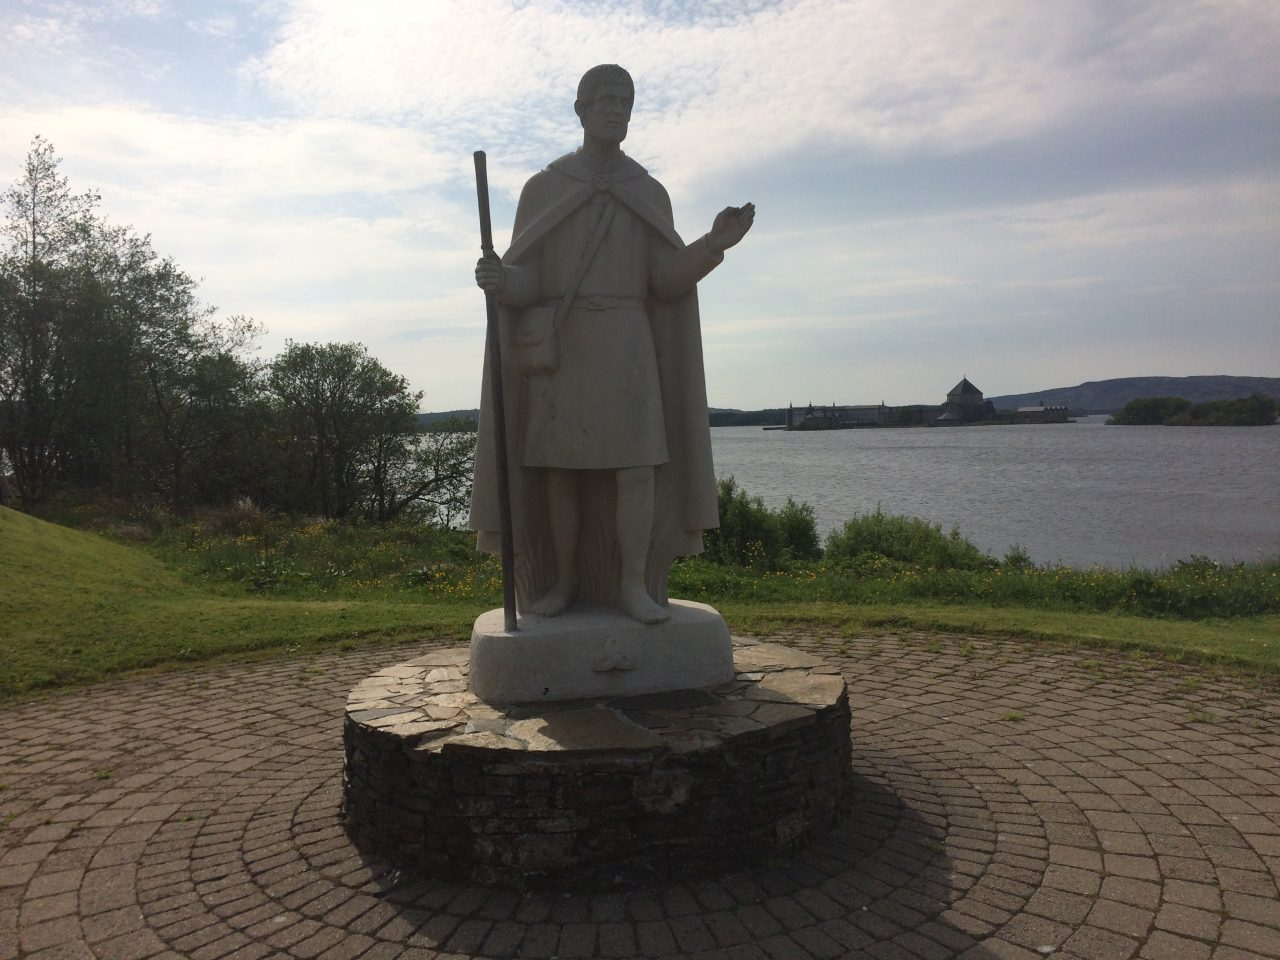 Statue of St. Patrick at Lough Derg